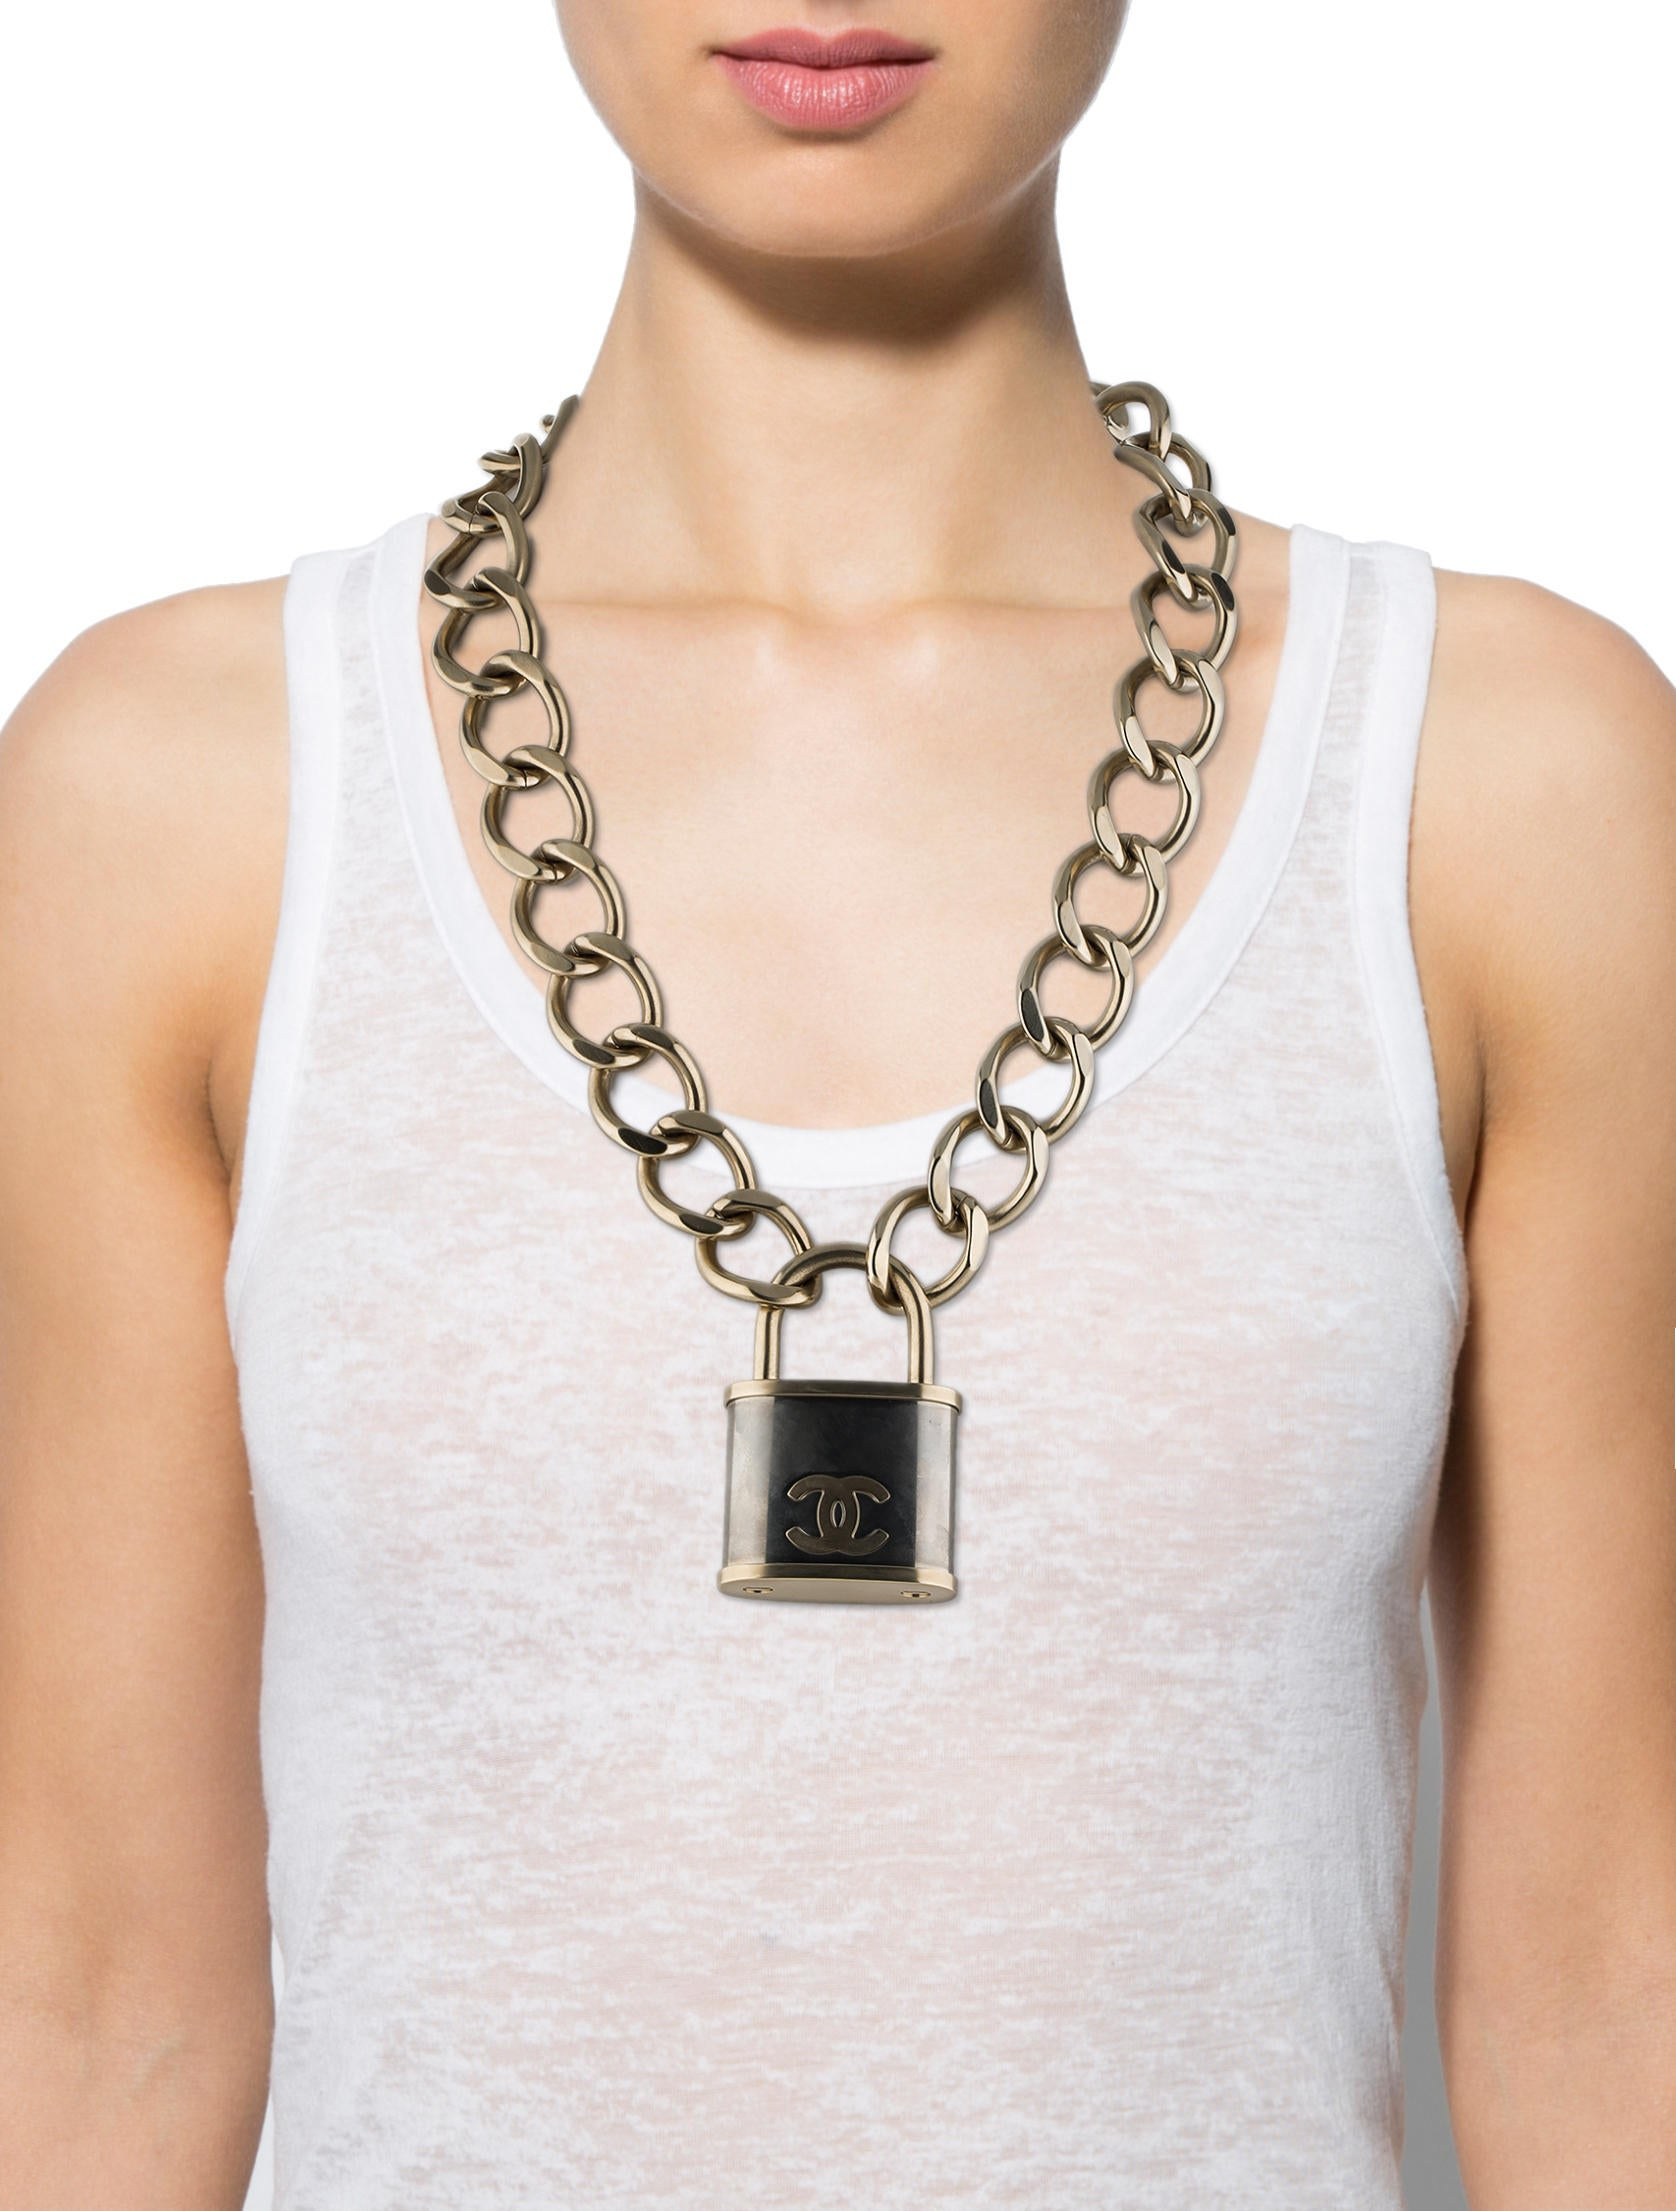 Chanel Padlock Necklace Necklaces Cha44825 The Realreal